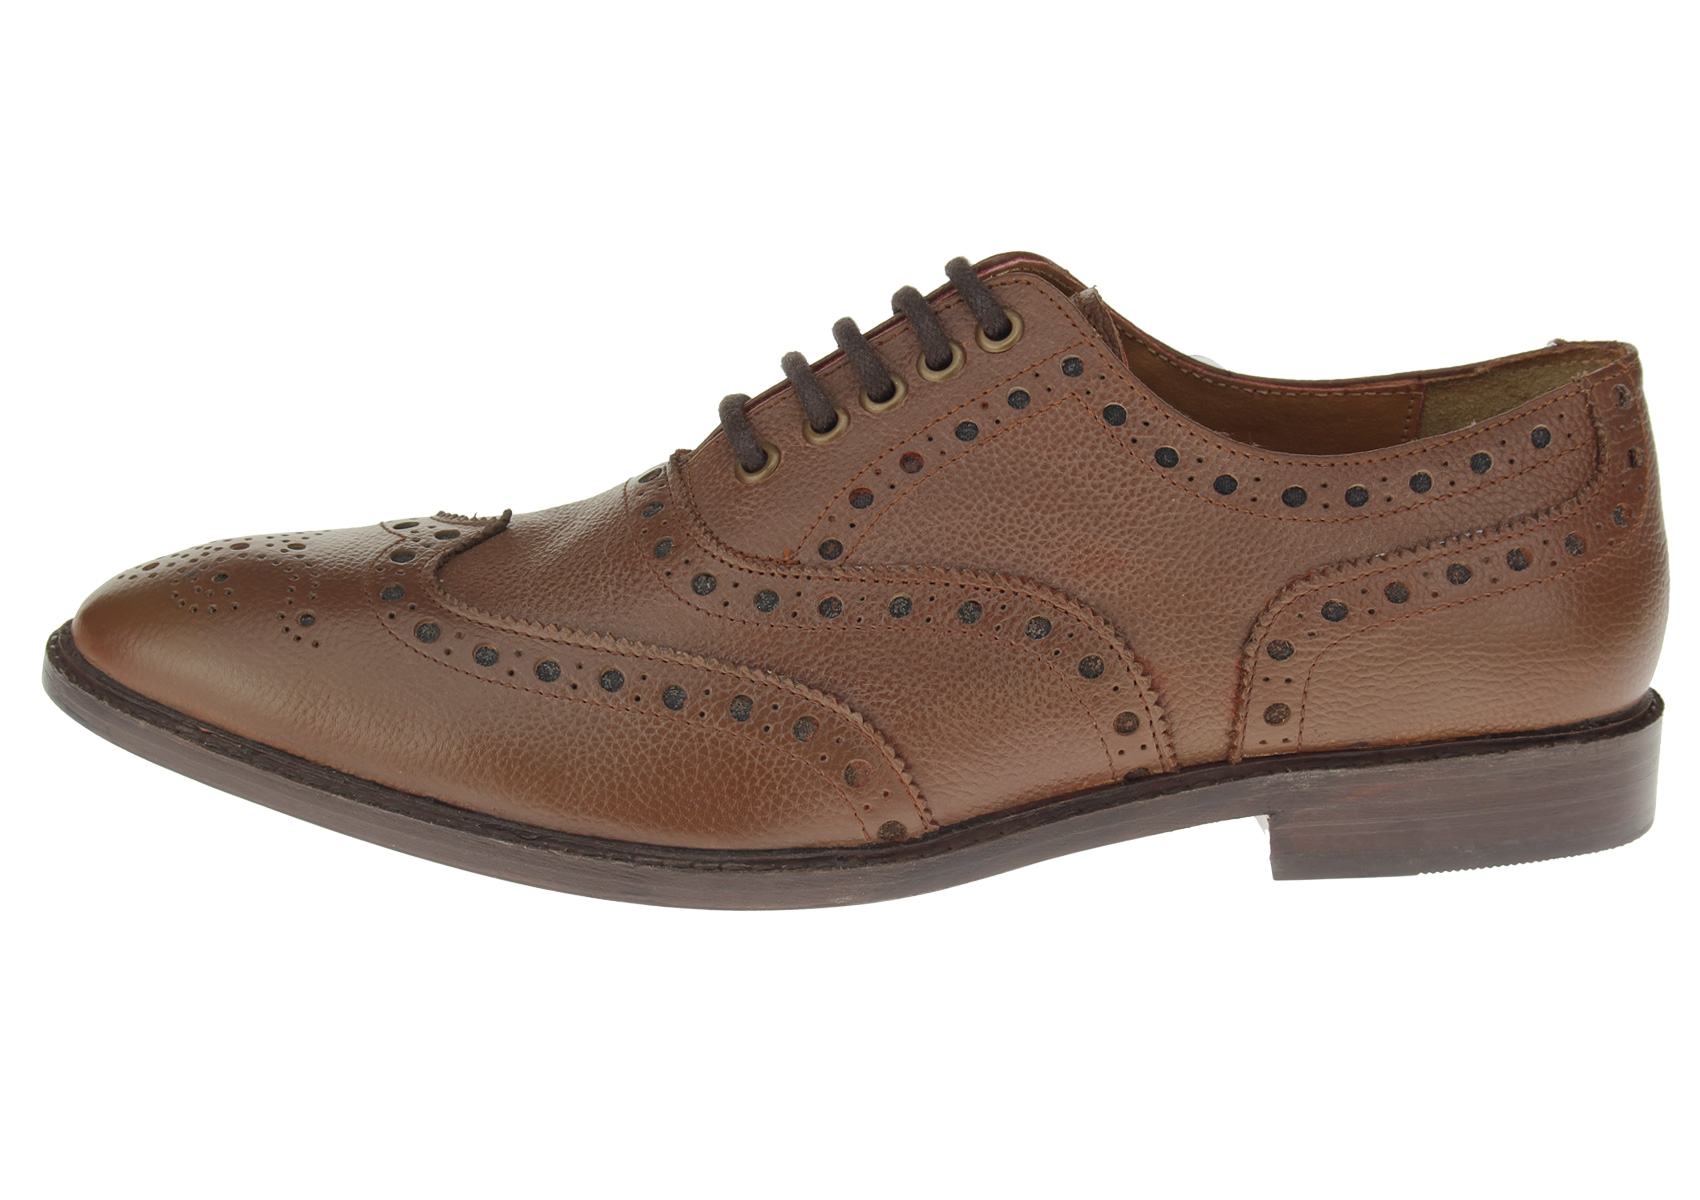 Luciano Natazzi Mens Dress Shoes Full Grain Leather Wingtip Oxford Lace-Up SL301